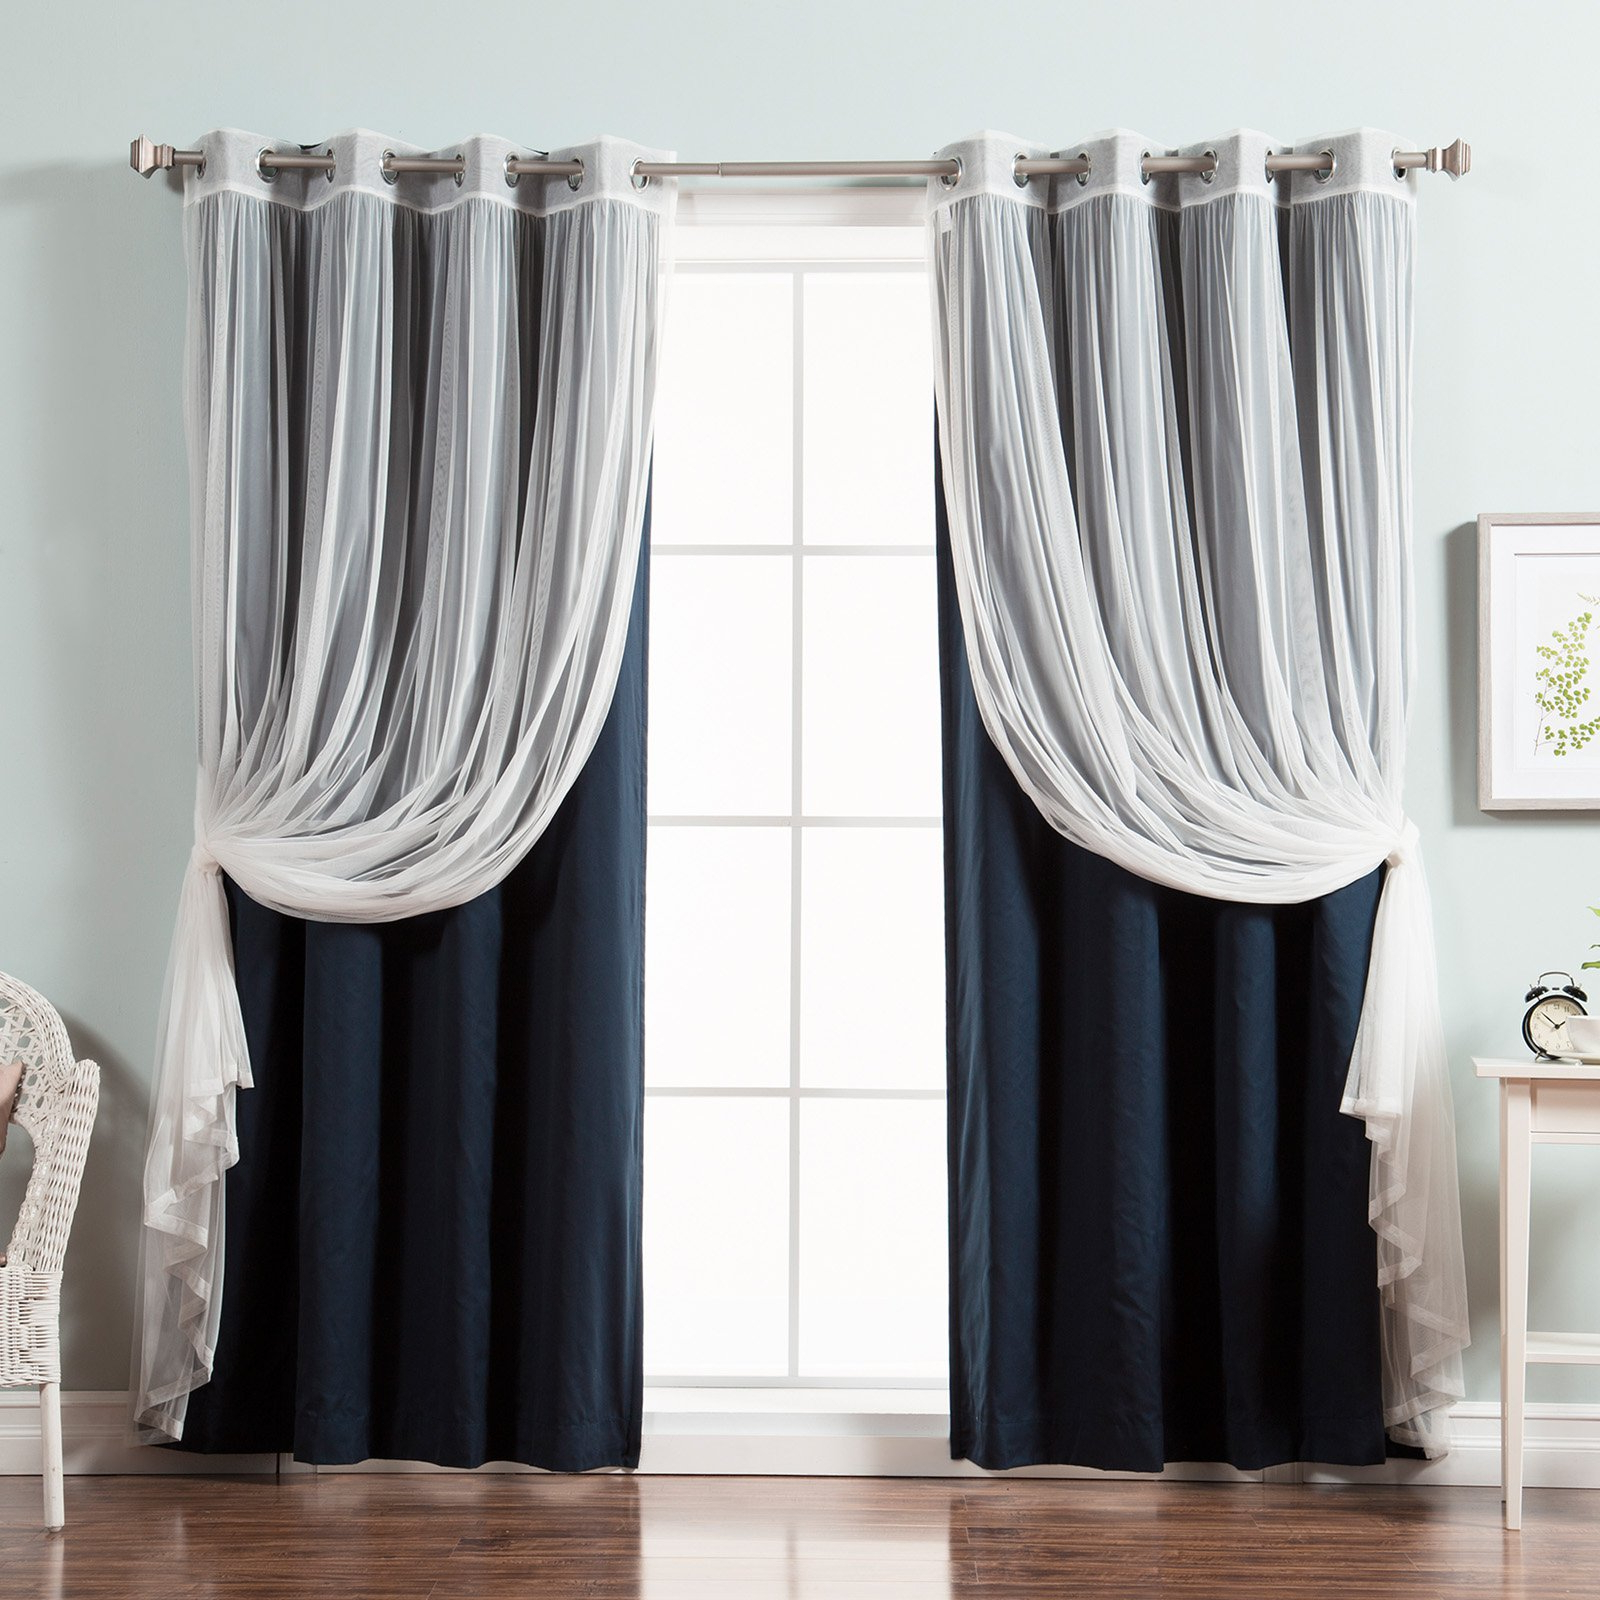 Most Recently Released Best Home Fashion Tulle Lace And Solid Cotton Blackout Mix & Match Curtain Panels – Set Of 4 With Regard To Mix And Match Blackout Blackout Curtains Panel Sets (Gallery 16 of 20)